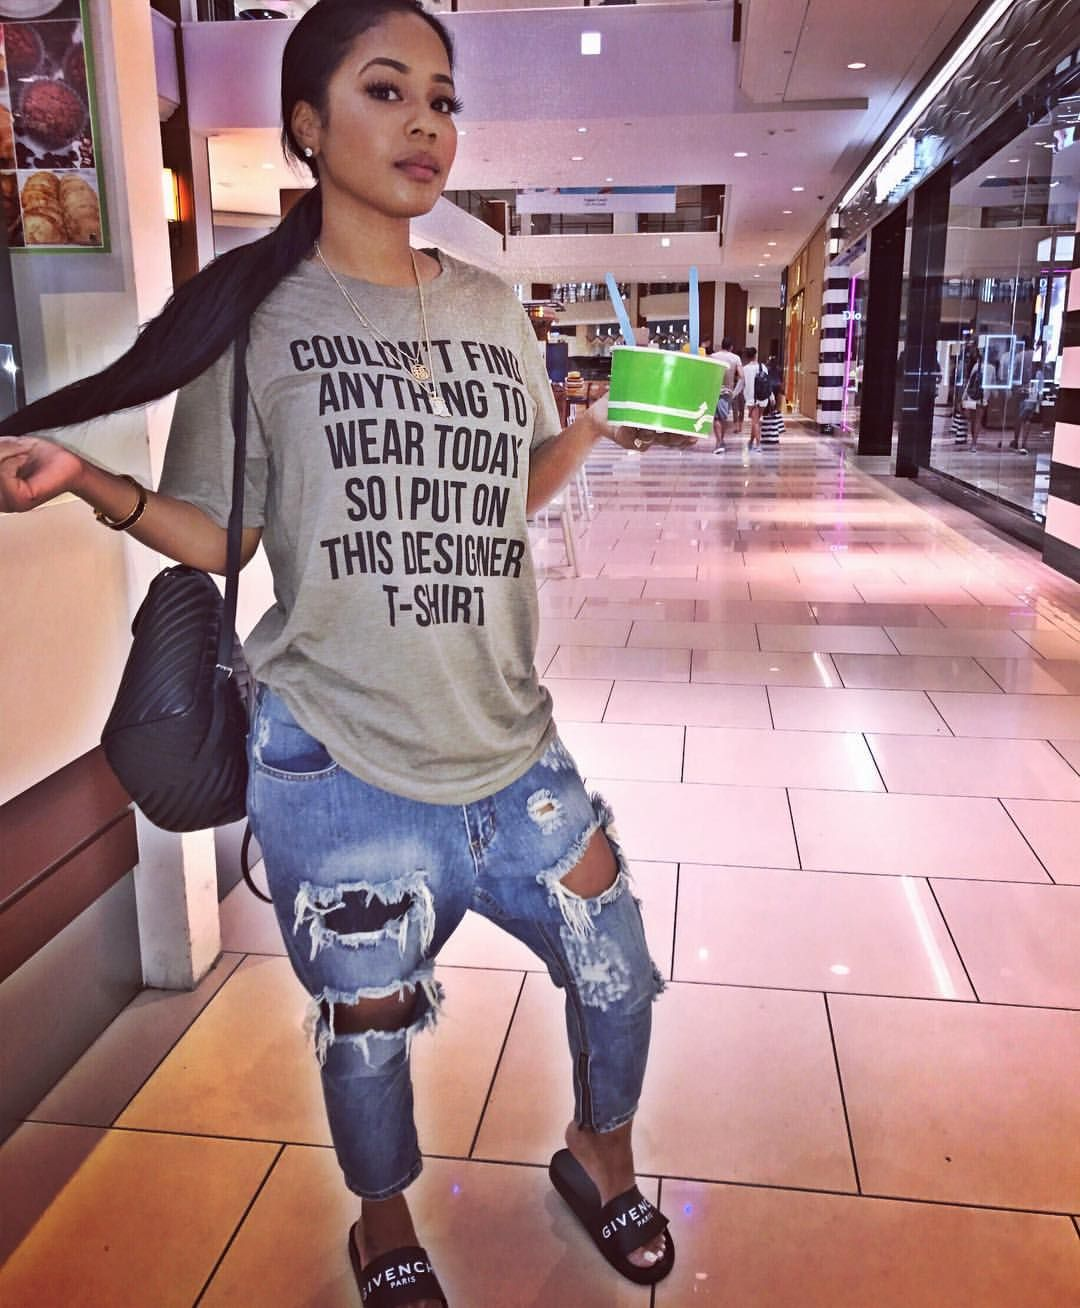 c68abc804d4 Pin by Steph B on Fashion in 2019 | Fashion, Trending outfits ...